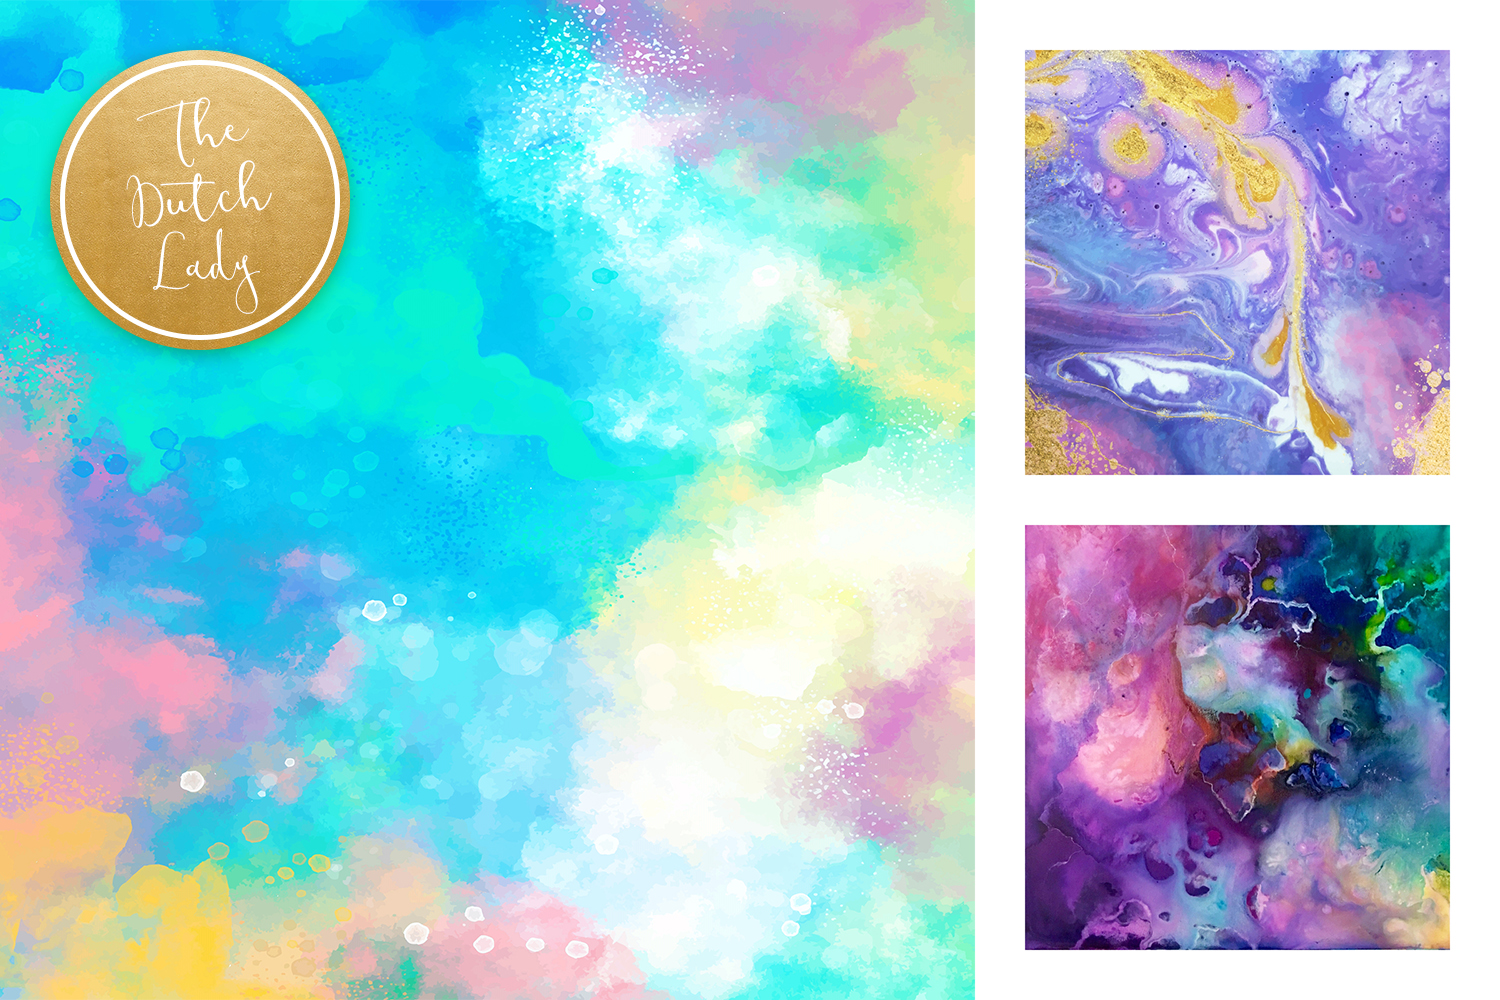 Colorful Brush Strokes & Stains Background Textures example image 4